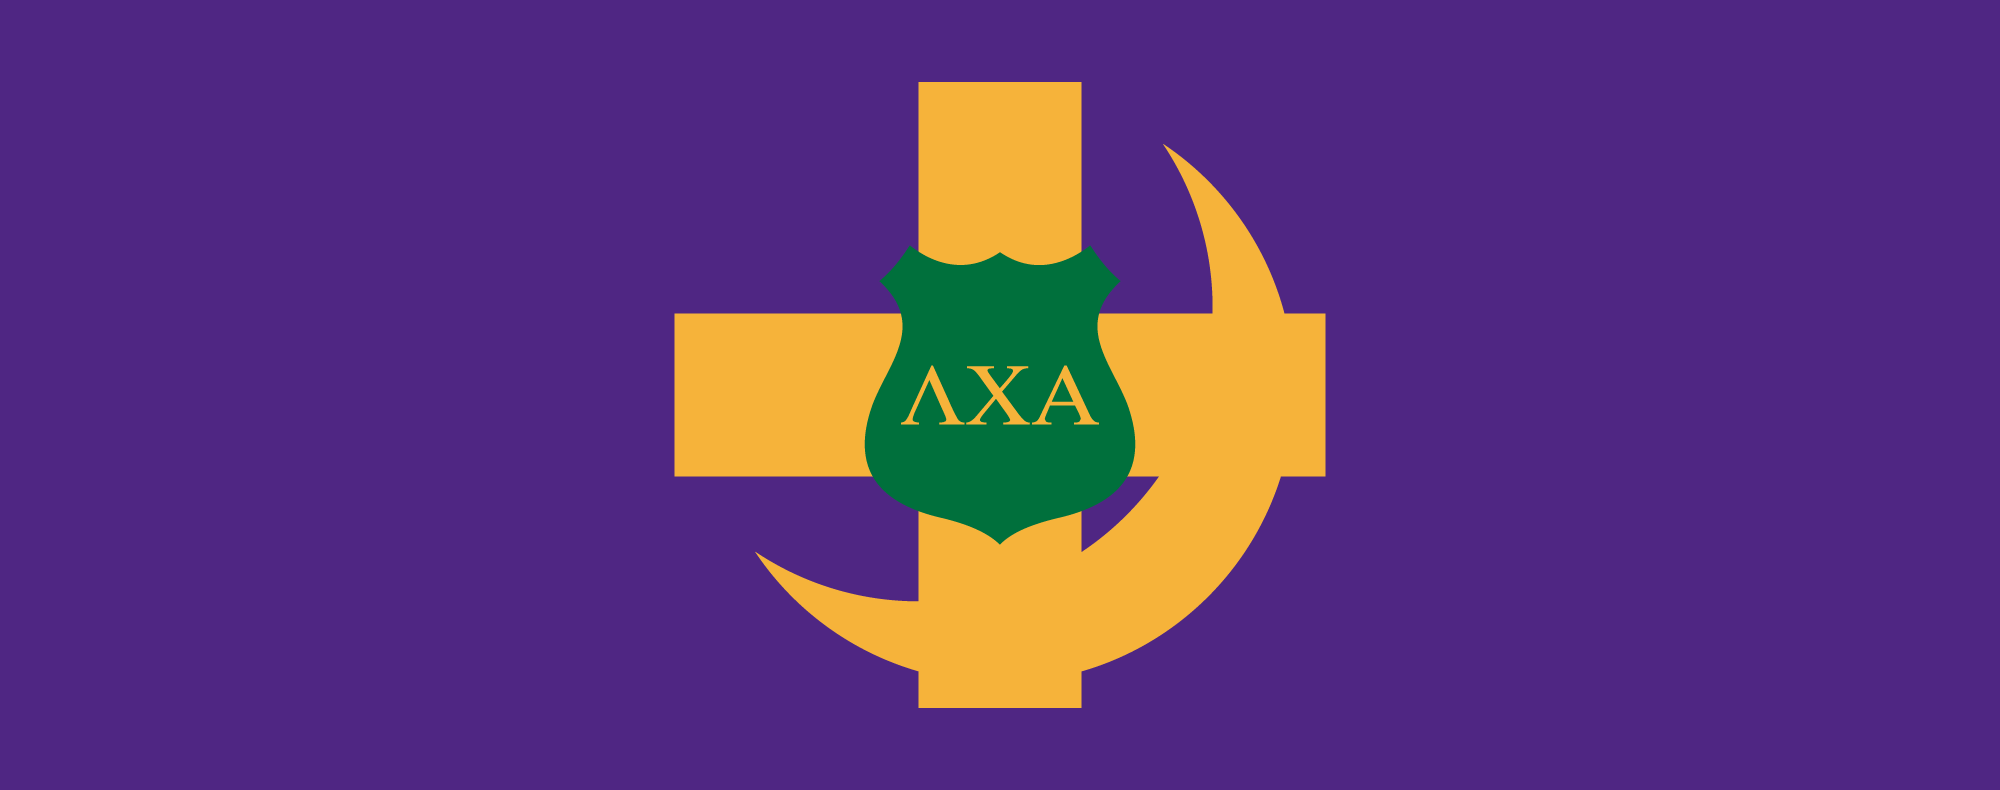 Lambda Chi Alpha Alumni Chapter at Virginia Tech